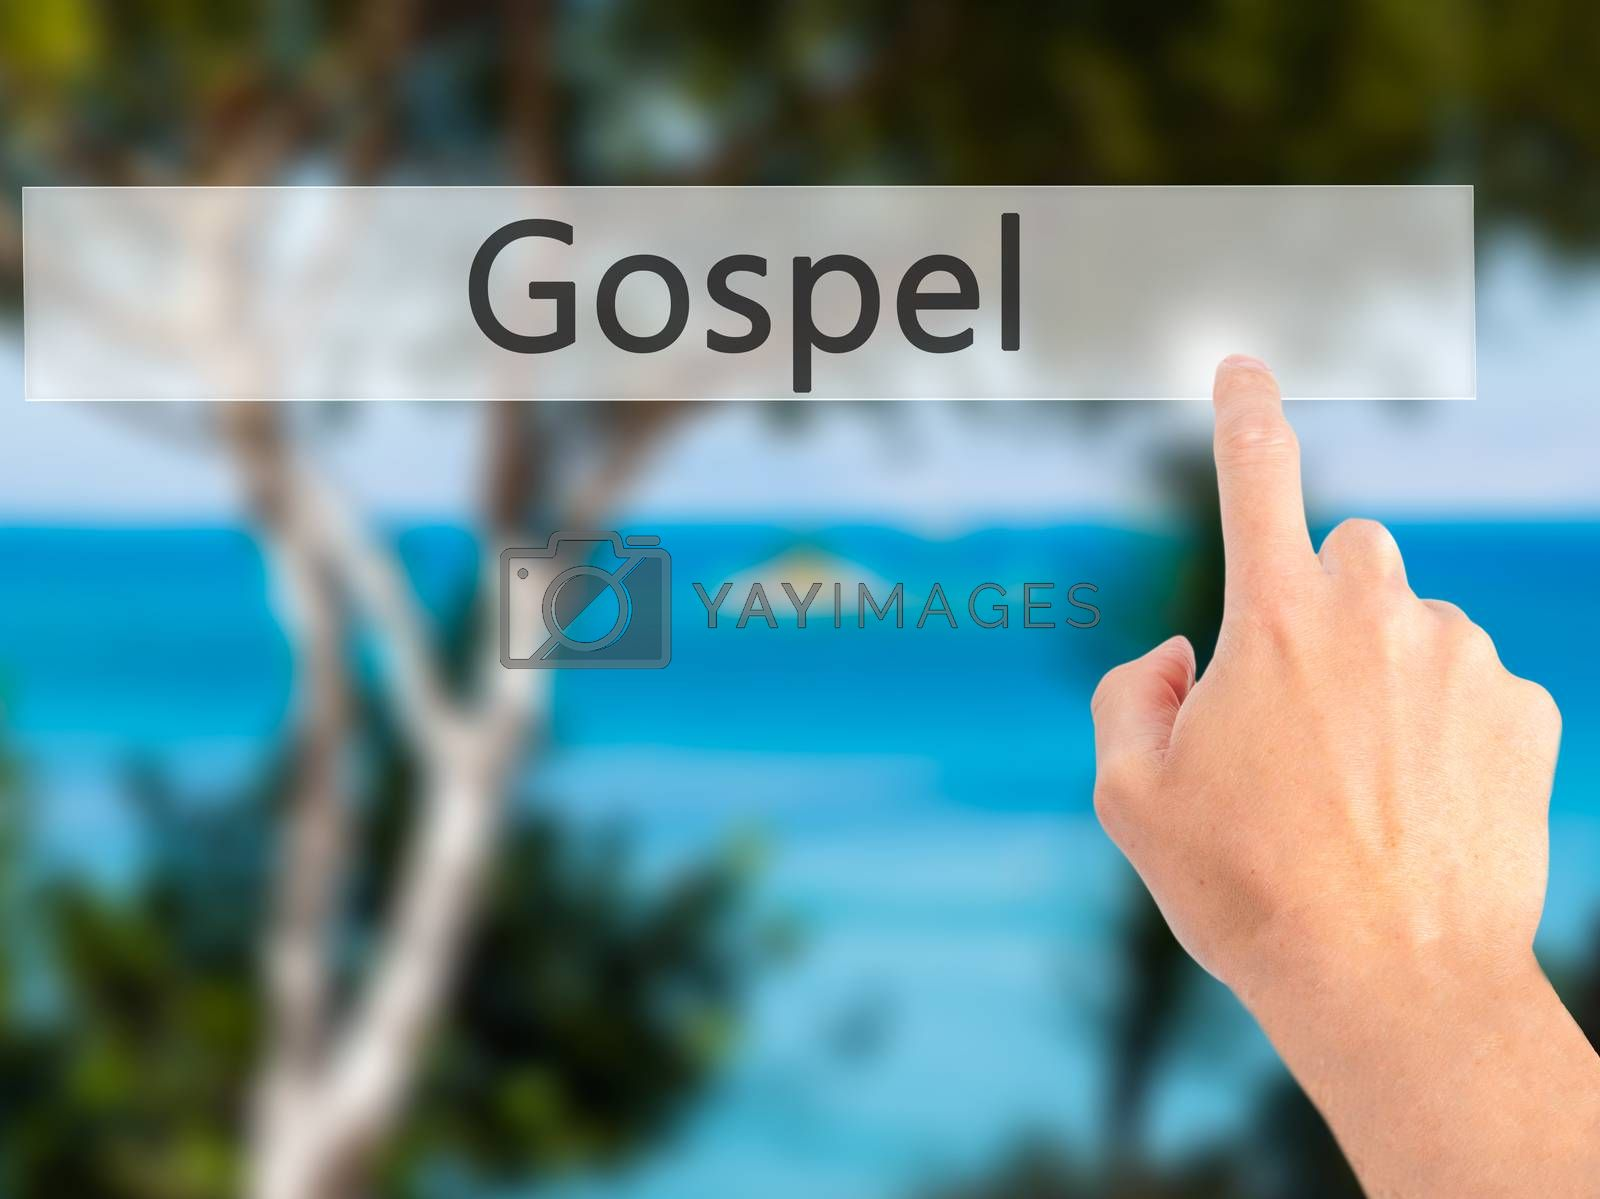 Gospel - Hand pressing a button on blurred background concept on by netsay.net